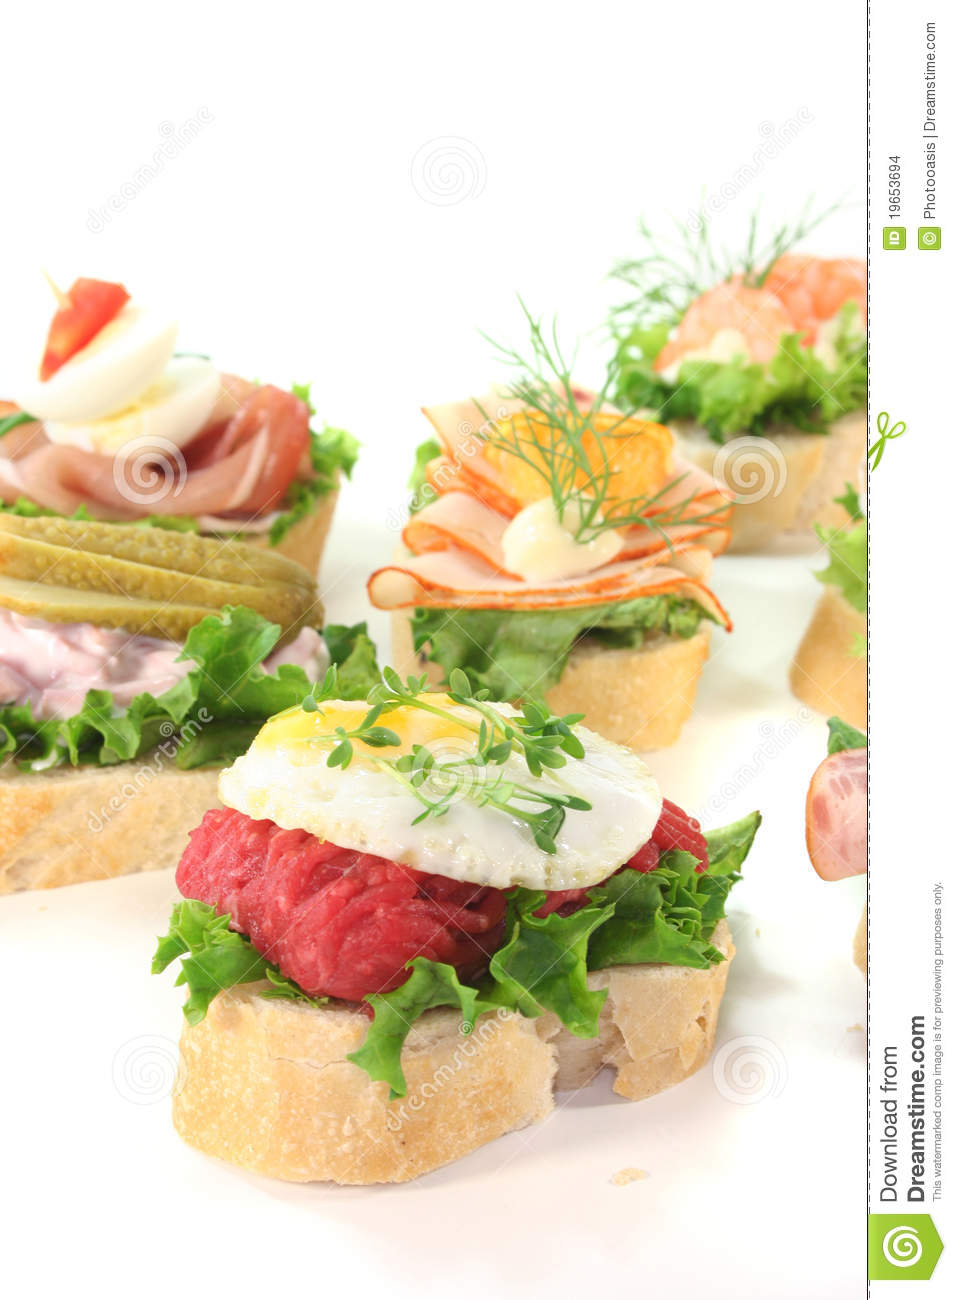 Canape stock foto afbeelding bestaande uit garnishing for Canape garnishes